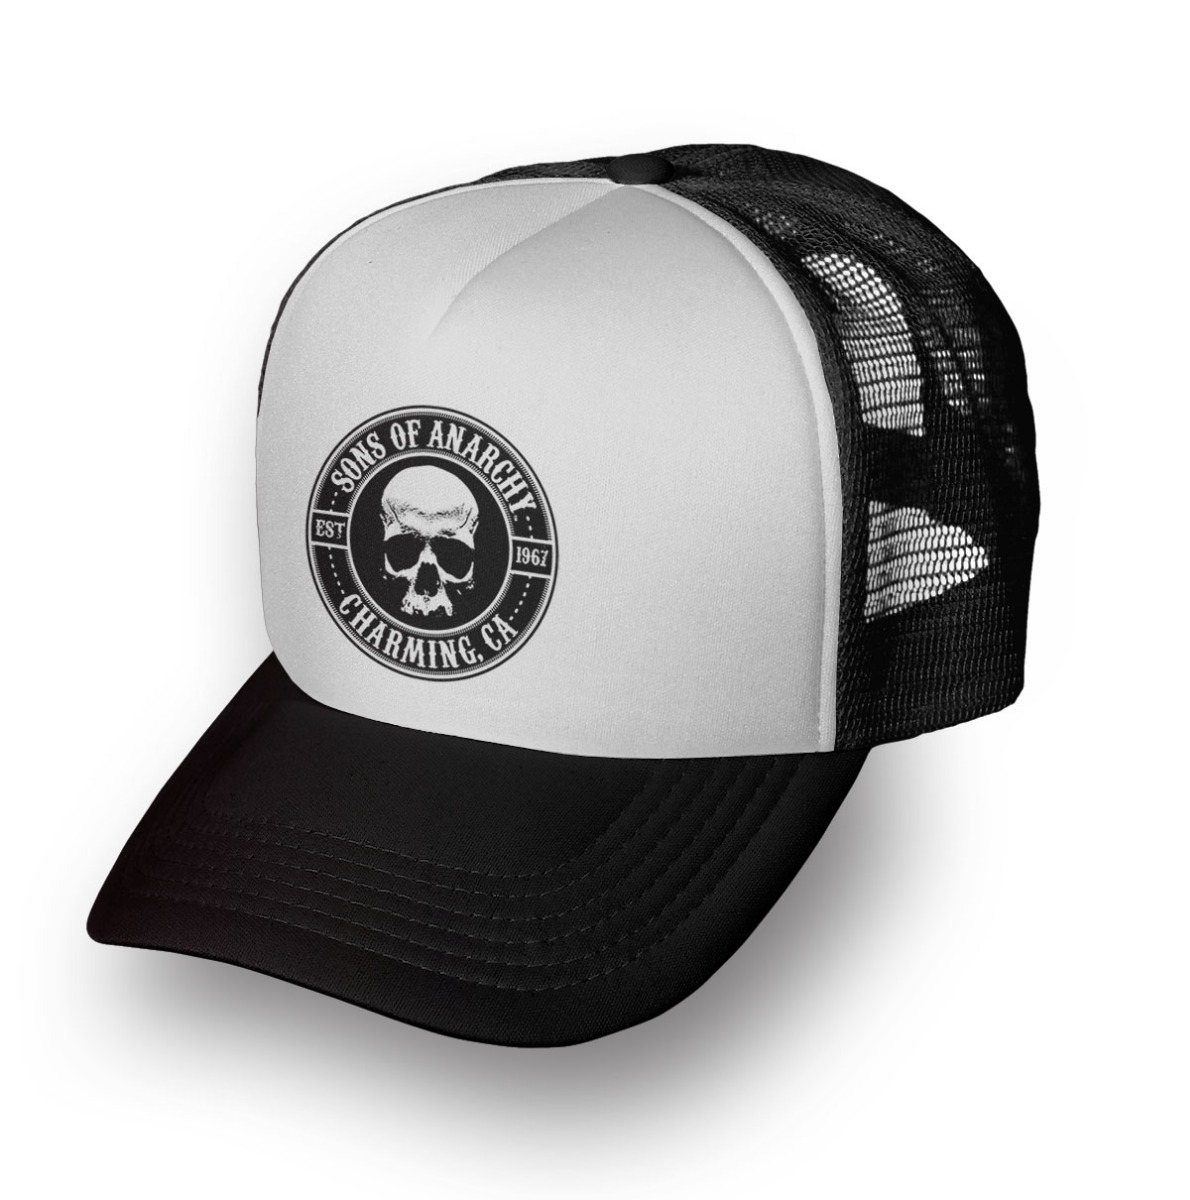 Gorra Trucker Samcro Sons Of Anarchy Netflix Serie -   249 de8241757c9